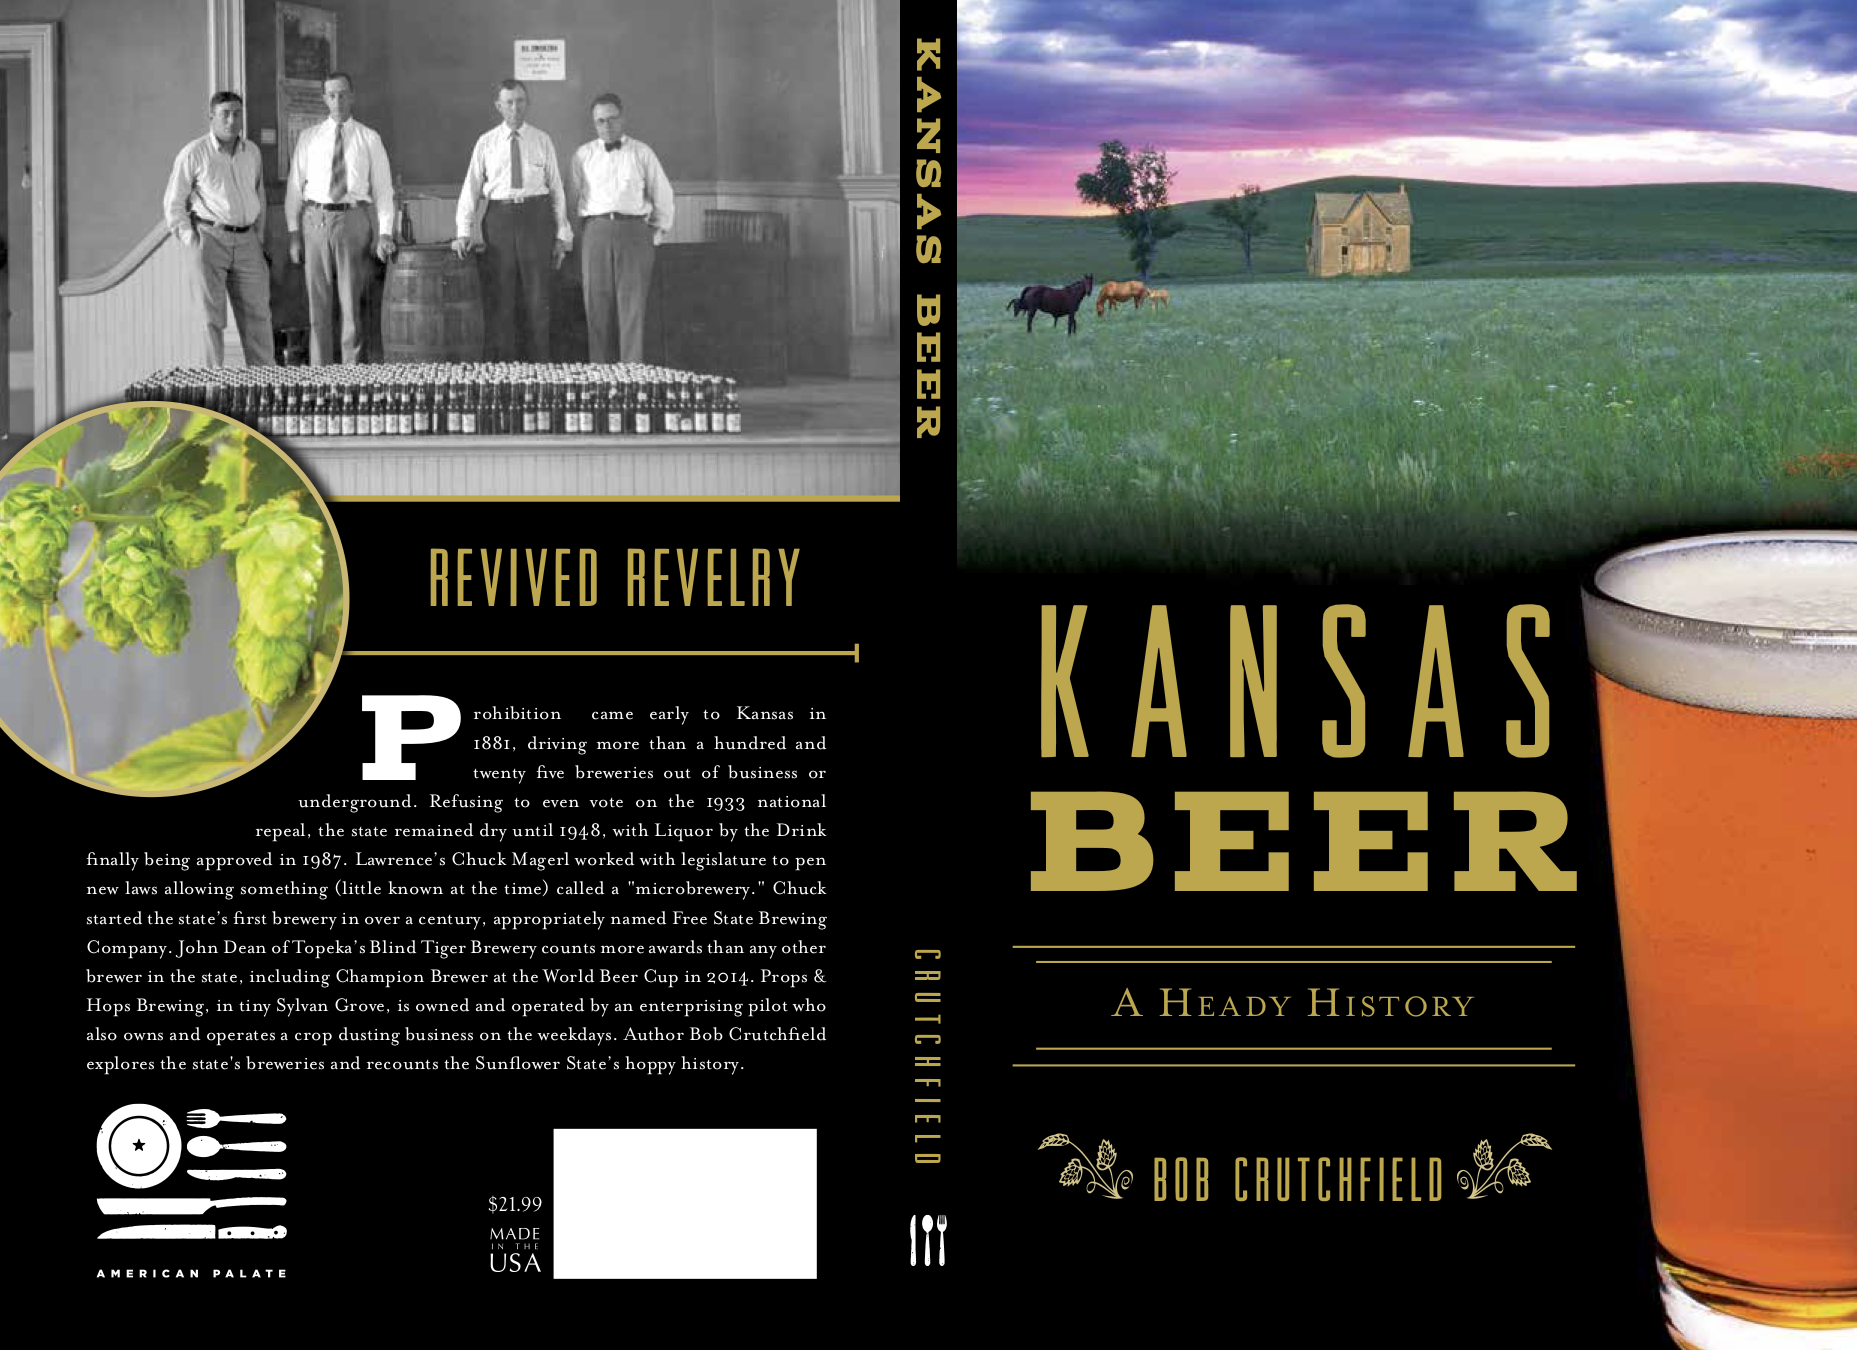 Front and back cover of book.